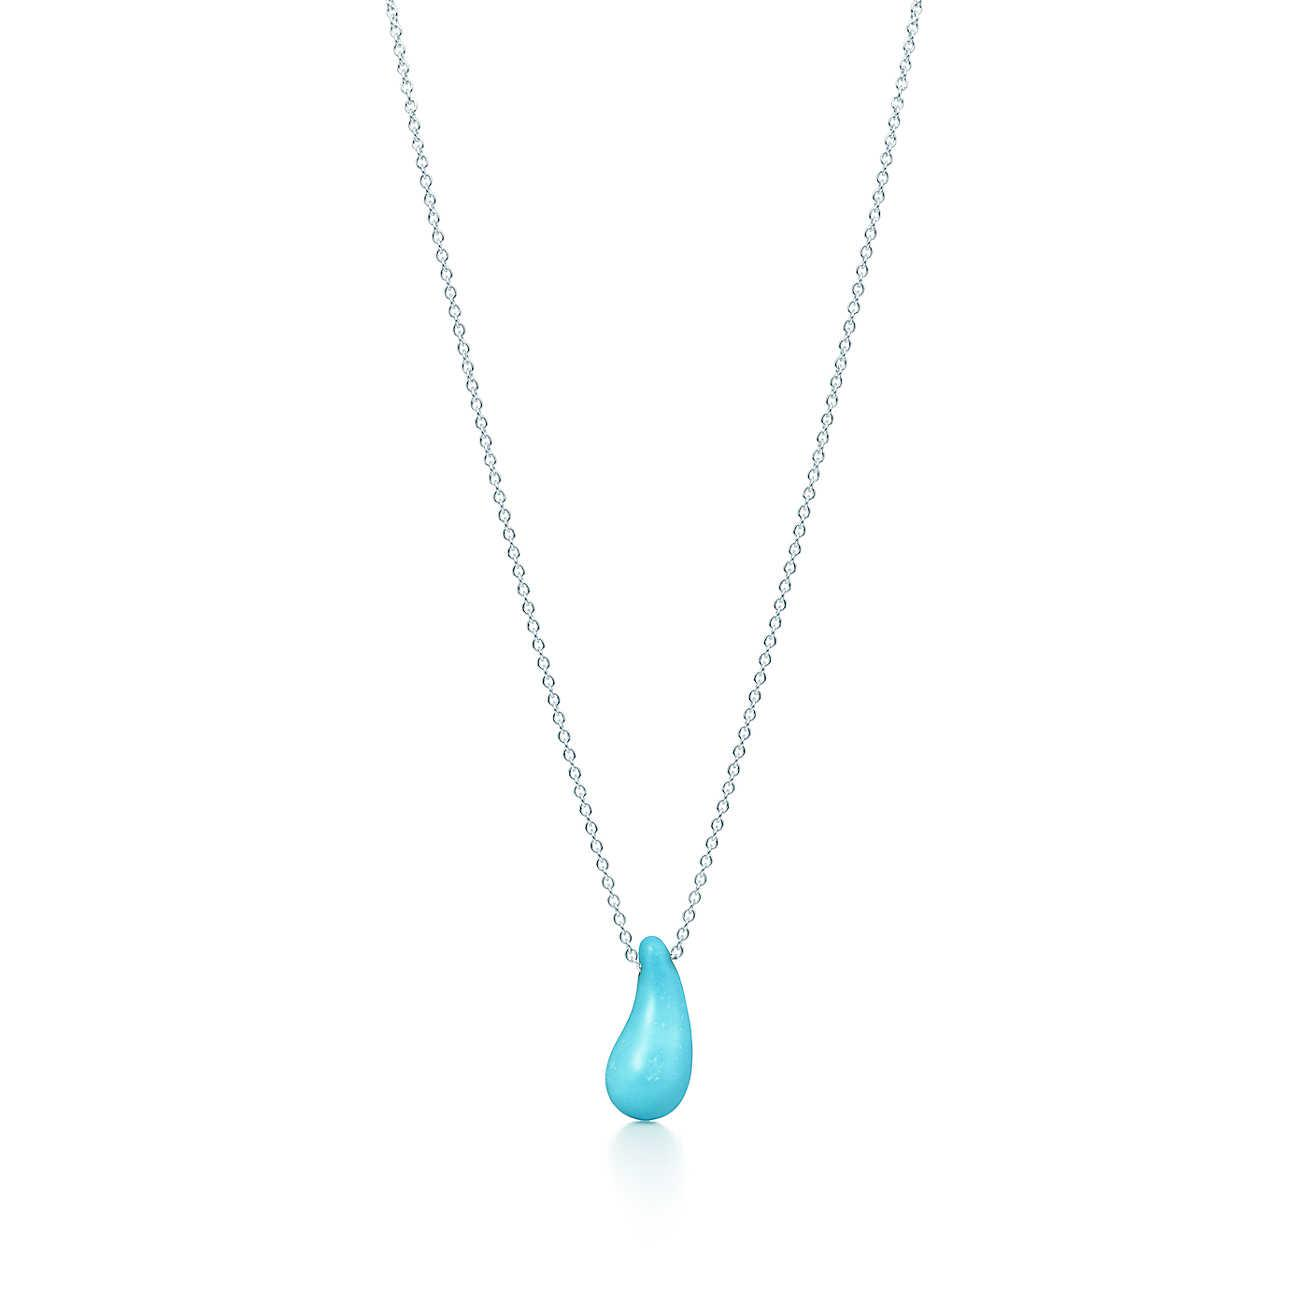 e5c33d792 Tiffany Co Teardrop Pendant In Metallic Lyst. Tiffany Co Teardrop Necklace